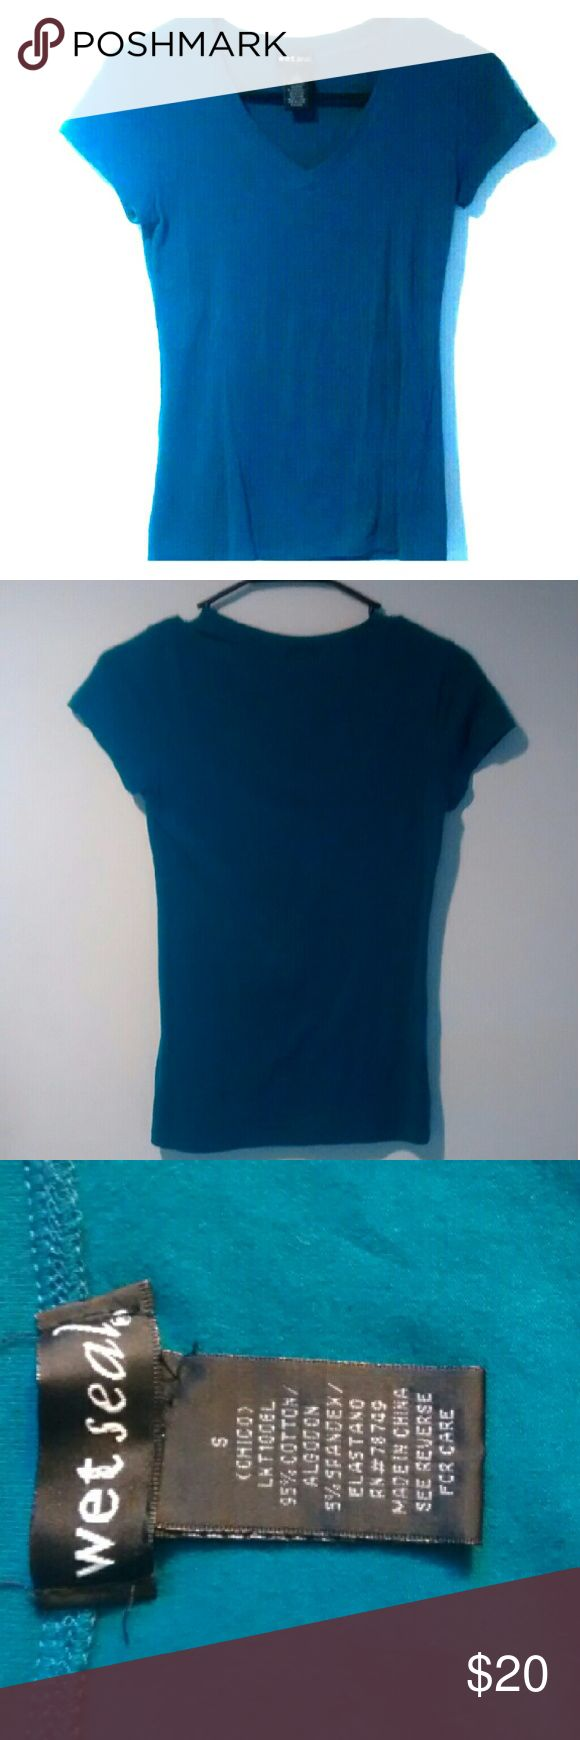 Wet Seal Blue Tight Shirt Only worn once. It's a dark turquoise color and there are no stains or tears. It's in very very good shape, almost like new. Wet Seal Tops Tees - Short Sleeve